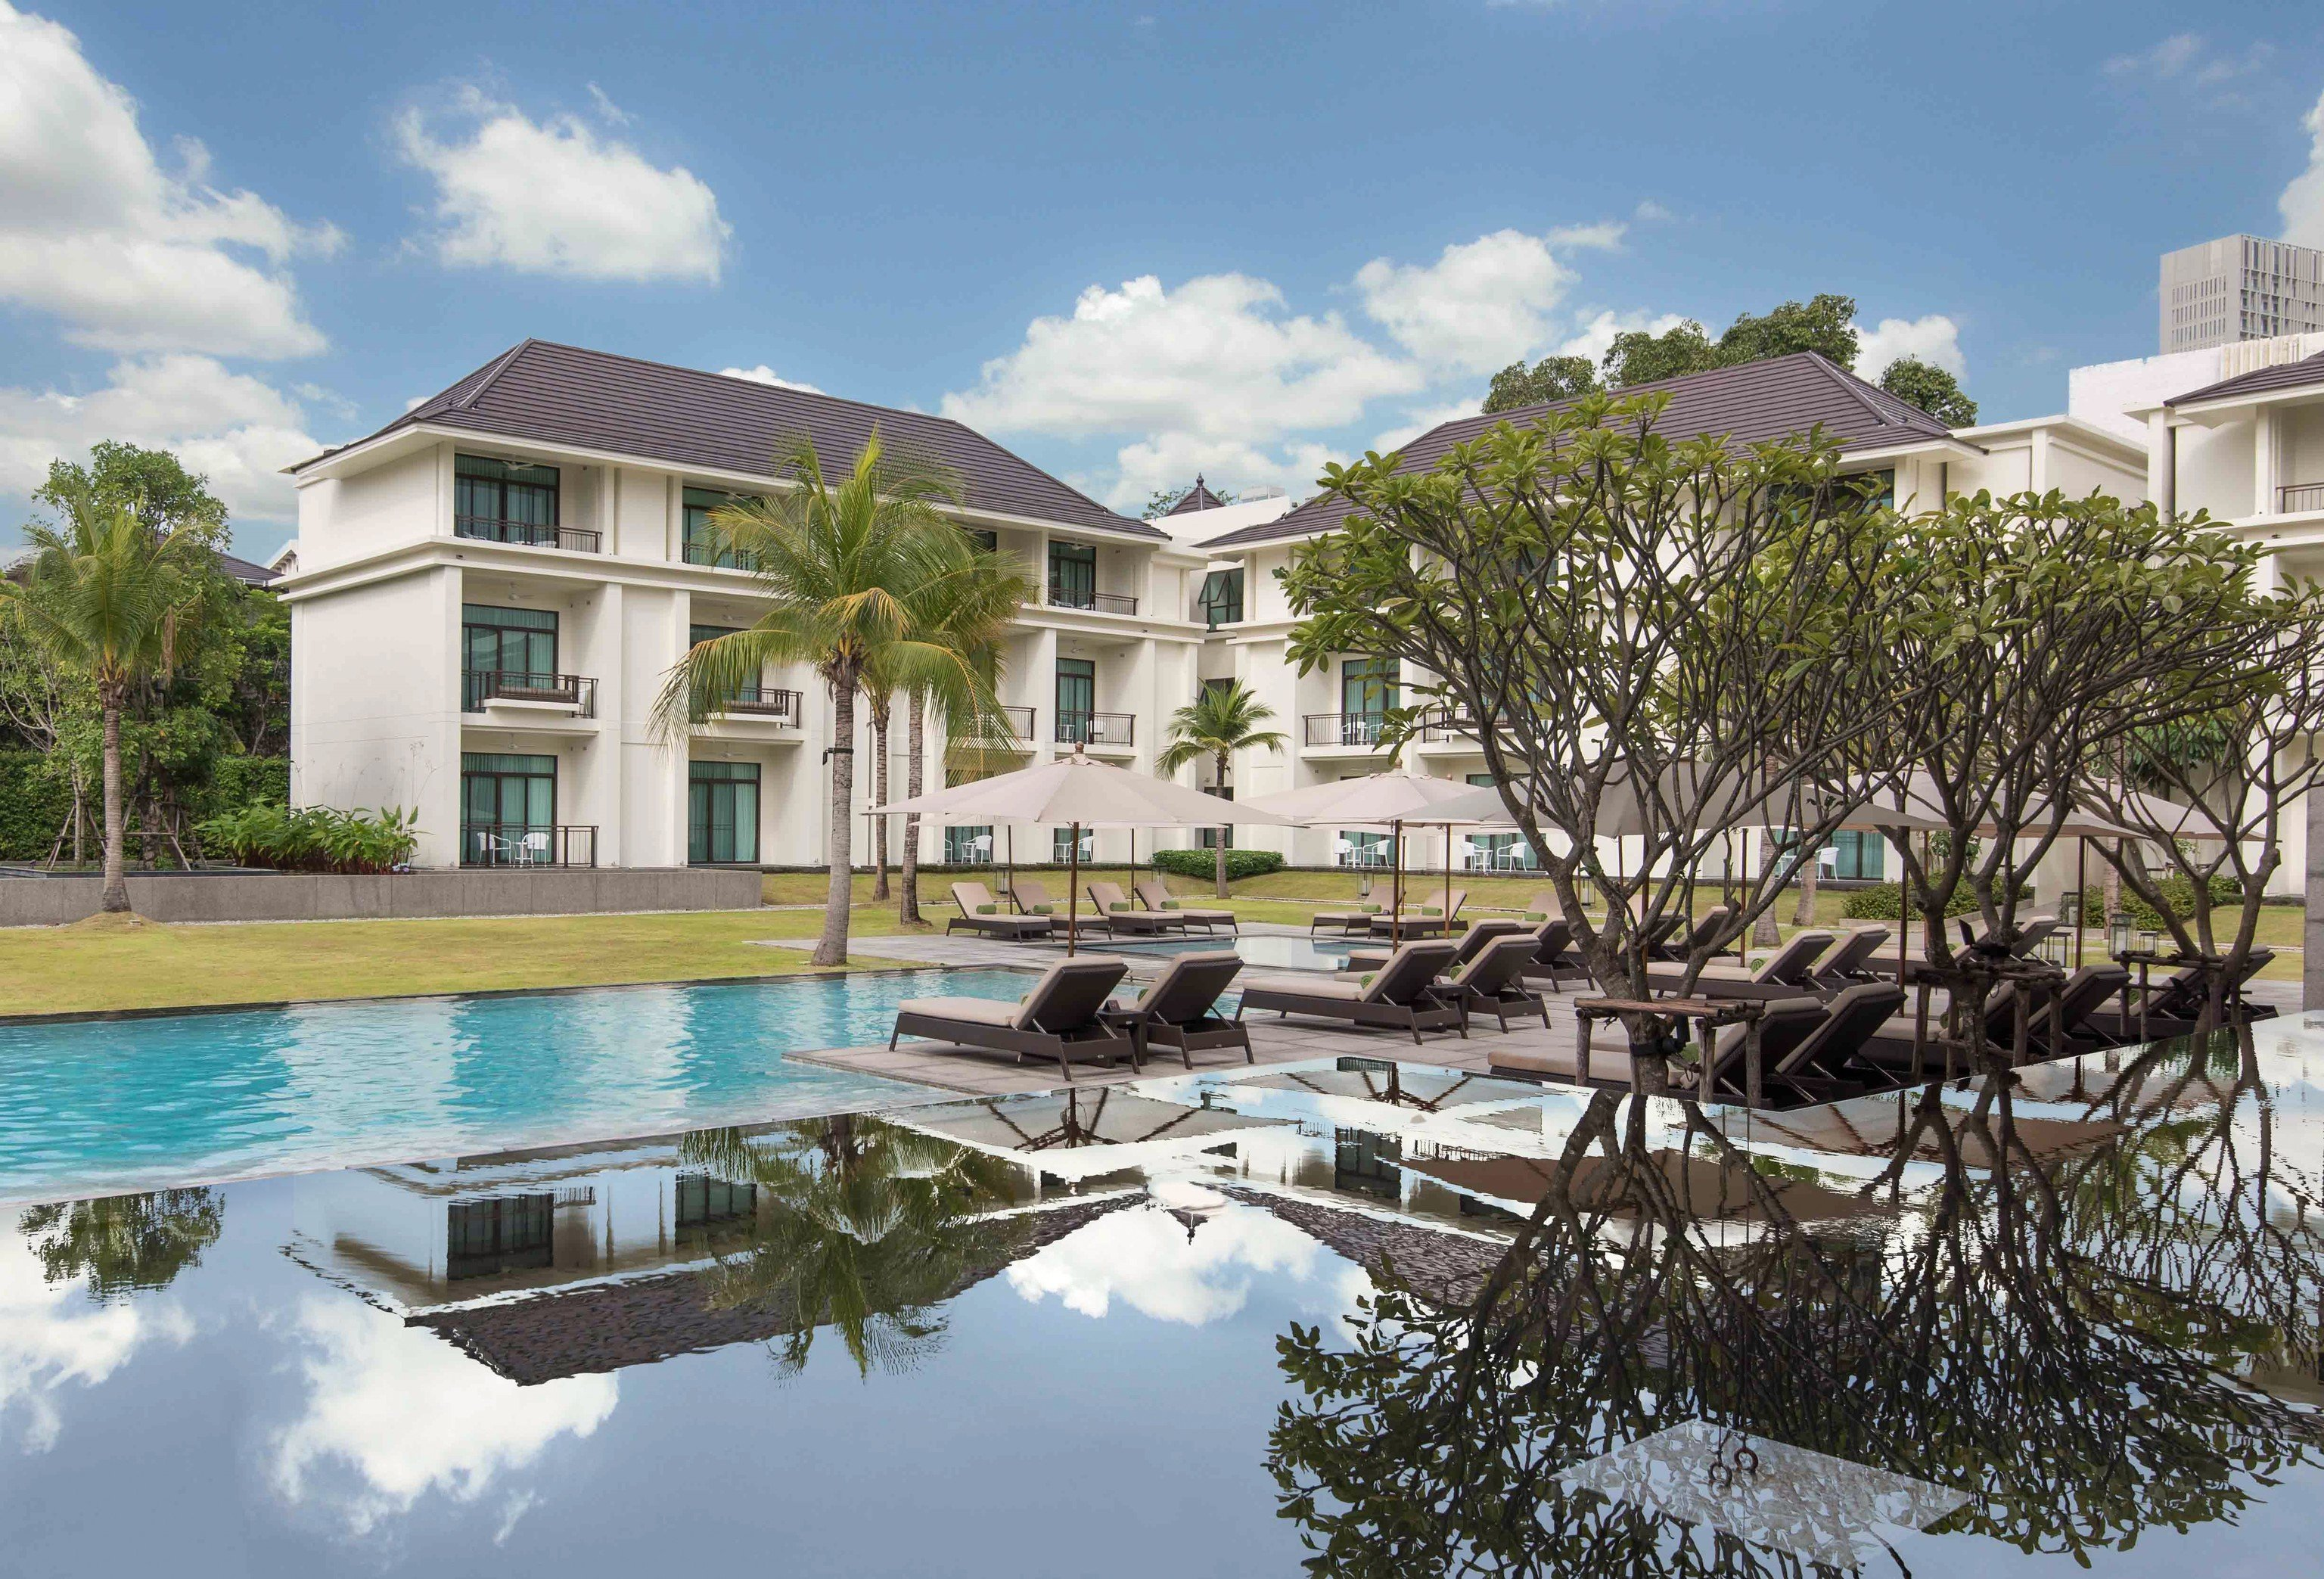 Hotels Romance outdoor water sky Boat house property condominium Resort estate swimming pool home residential area vacation real estate Villa marina mansion dock waterway docked apartment swimming